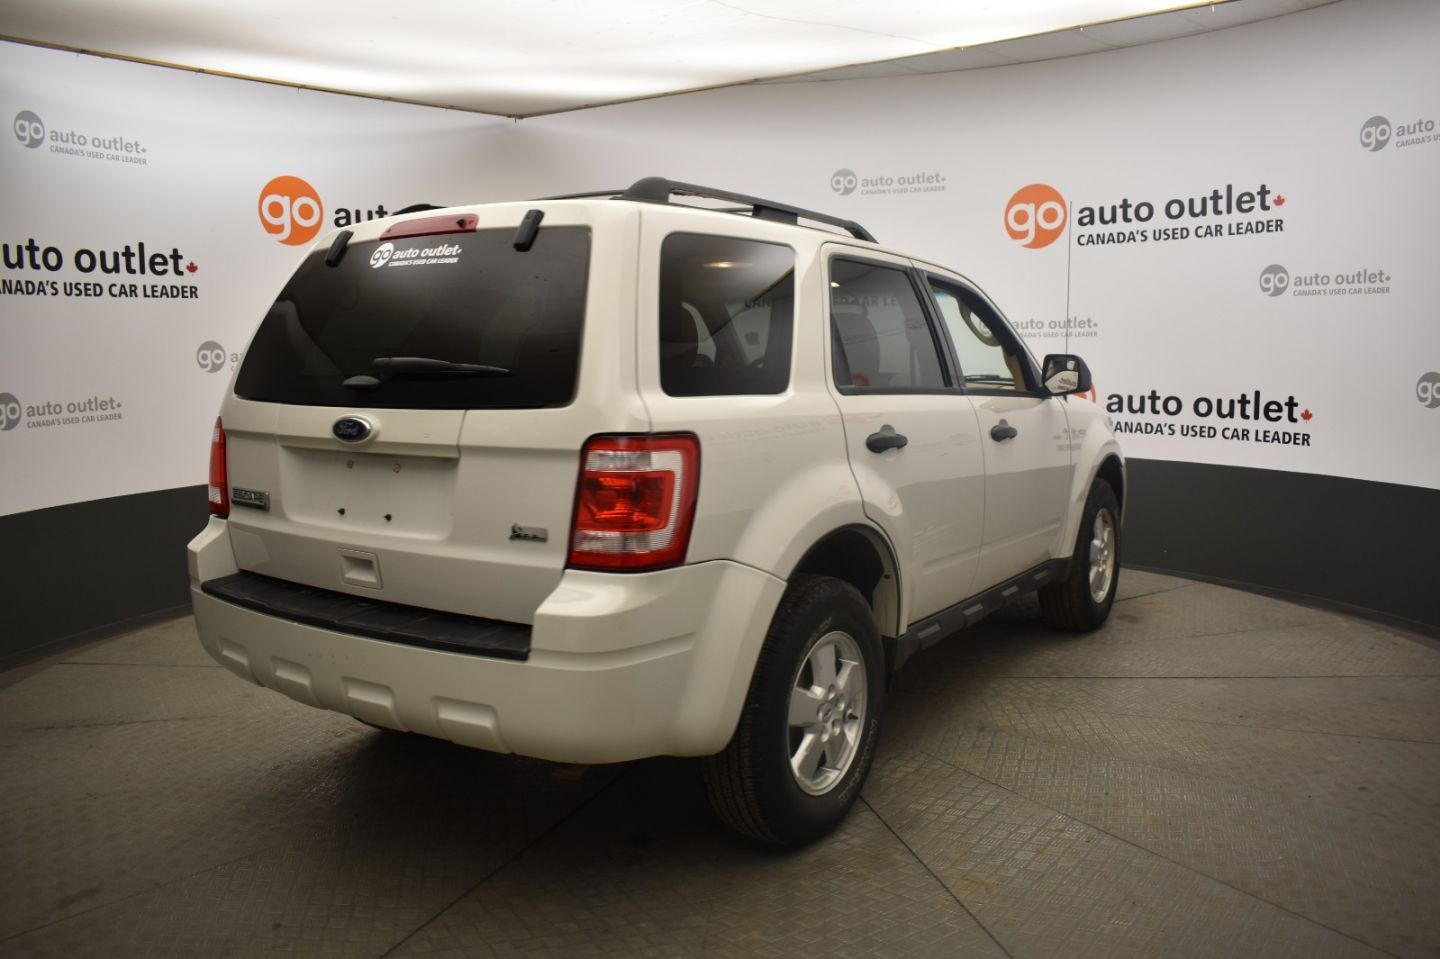 2012 Ford Escape XLT for sale in Leduc, Alberta